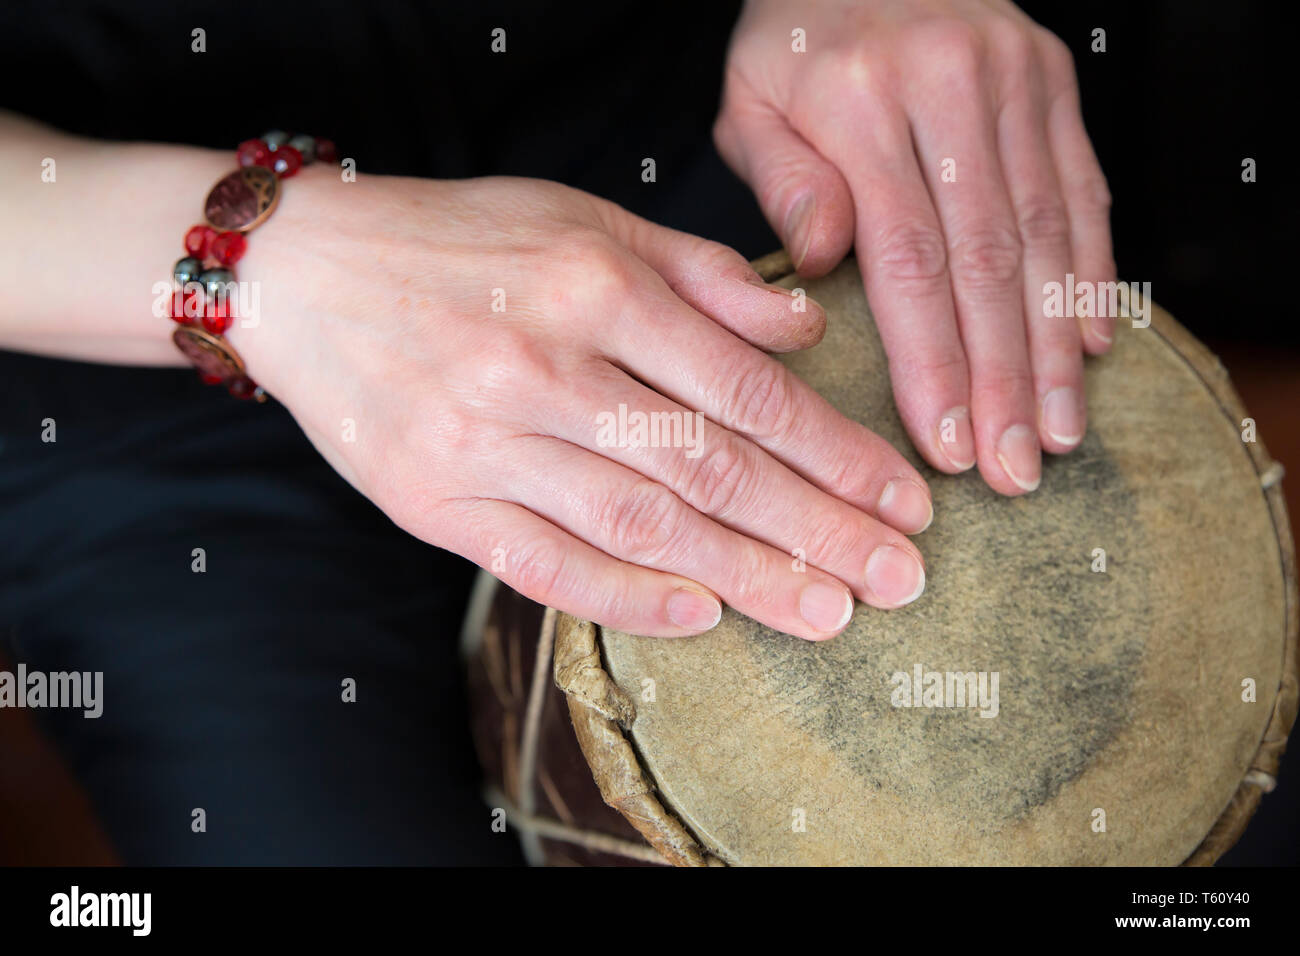 Close up of female hands playing simple, traditional African hand drum (tapping rhythm with finger tips) both hands resting on natural skin drum head. - Stock Image